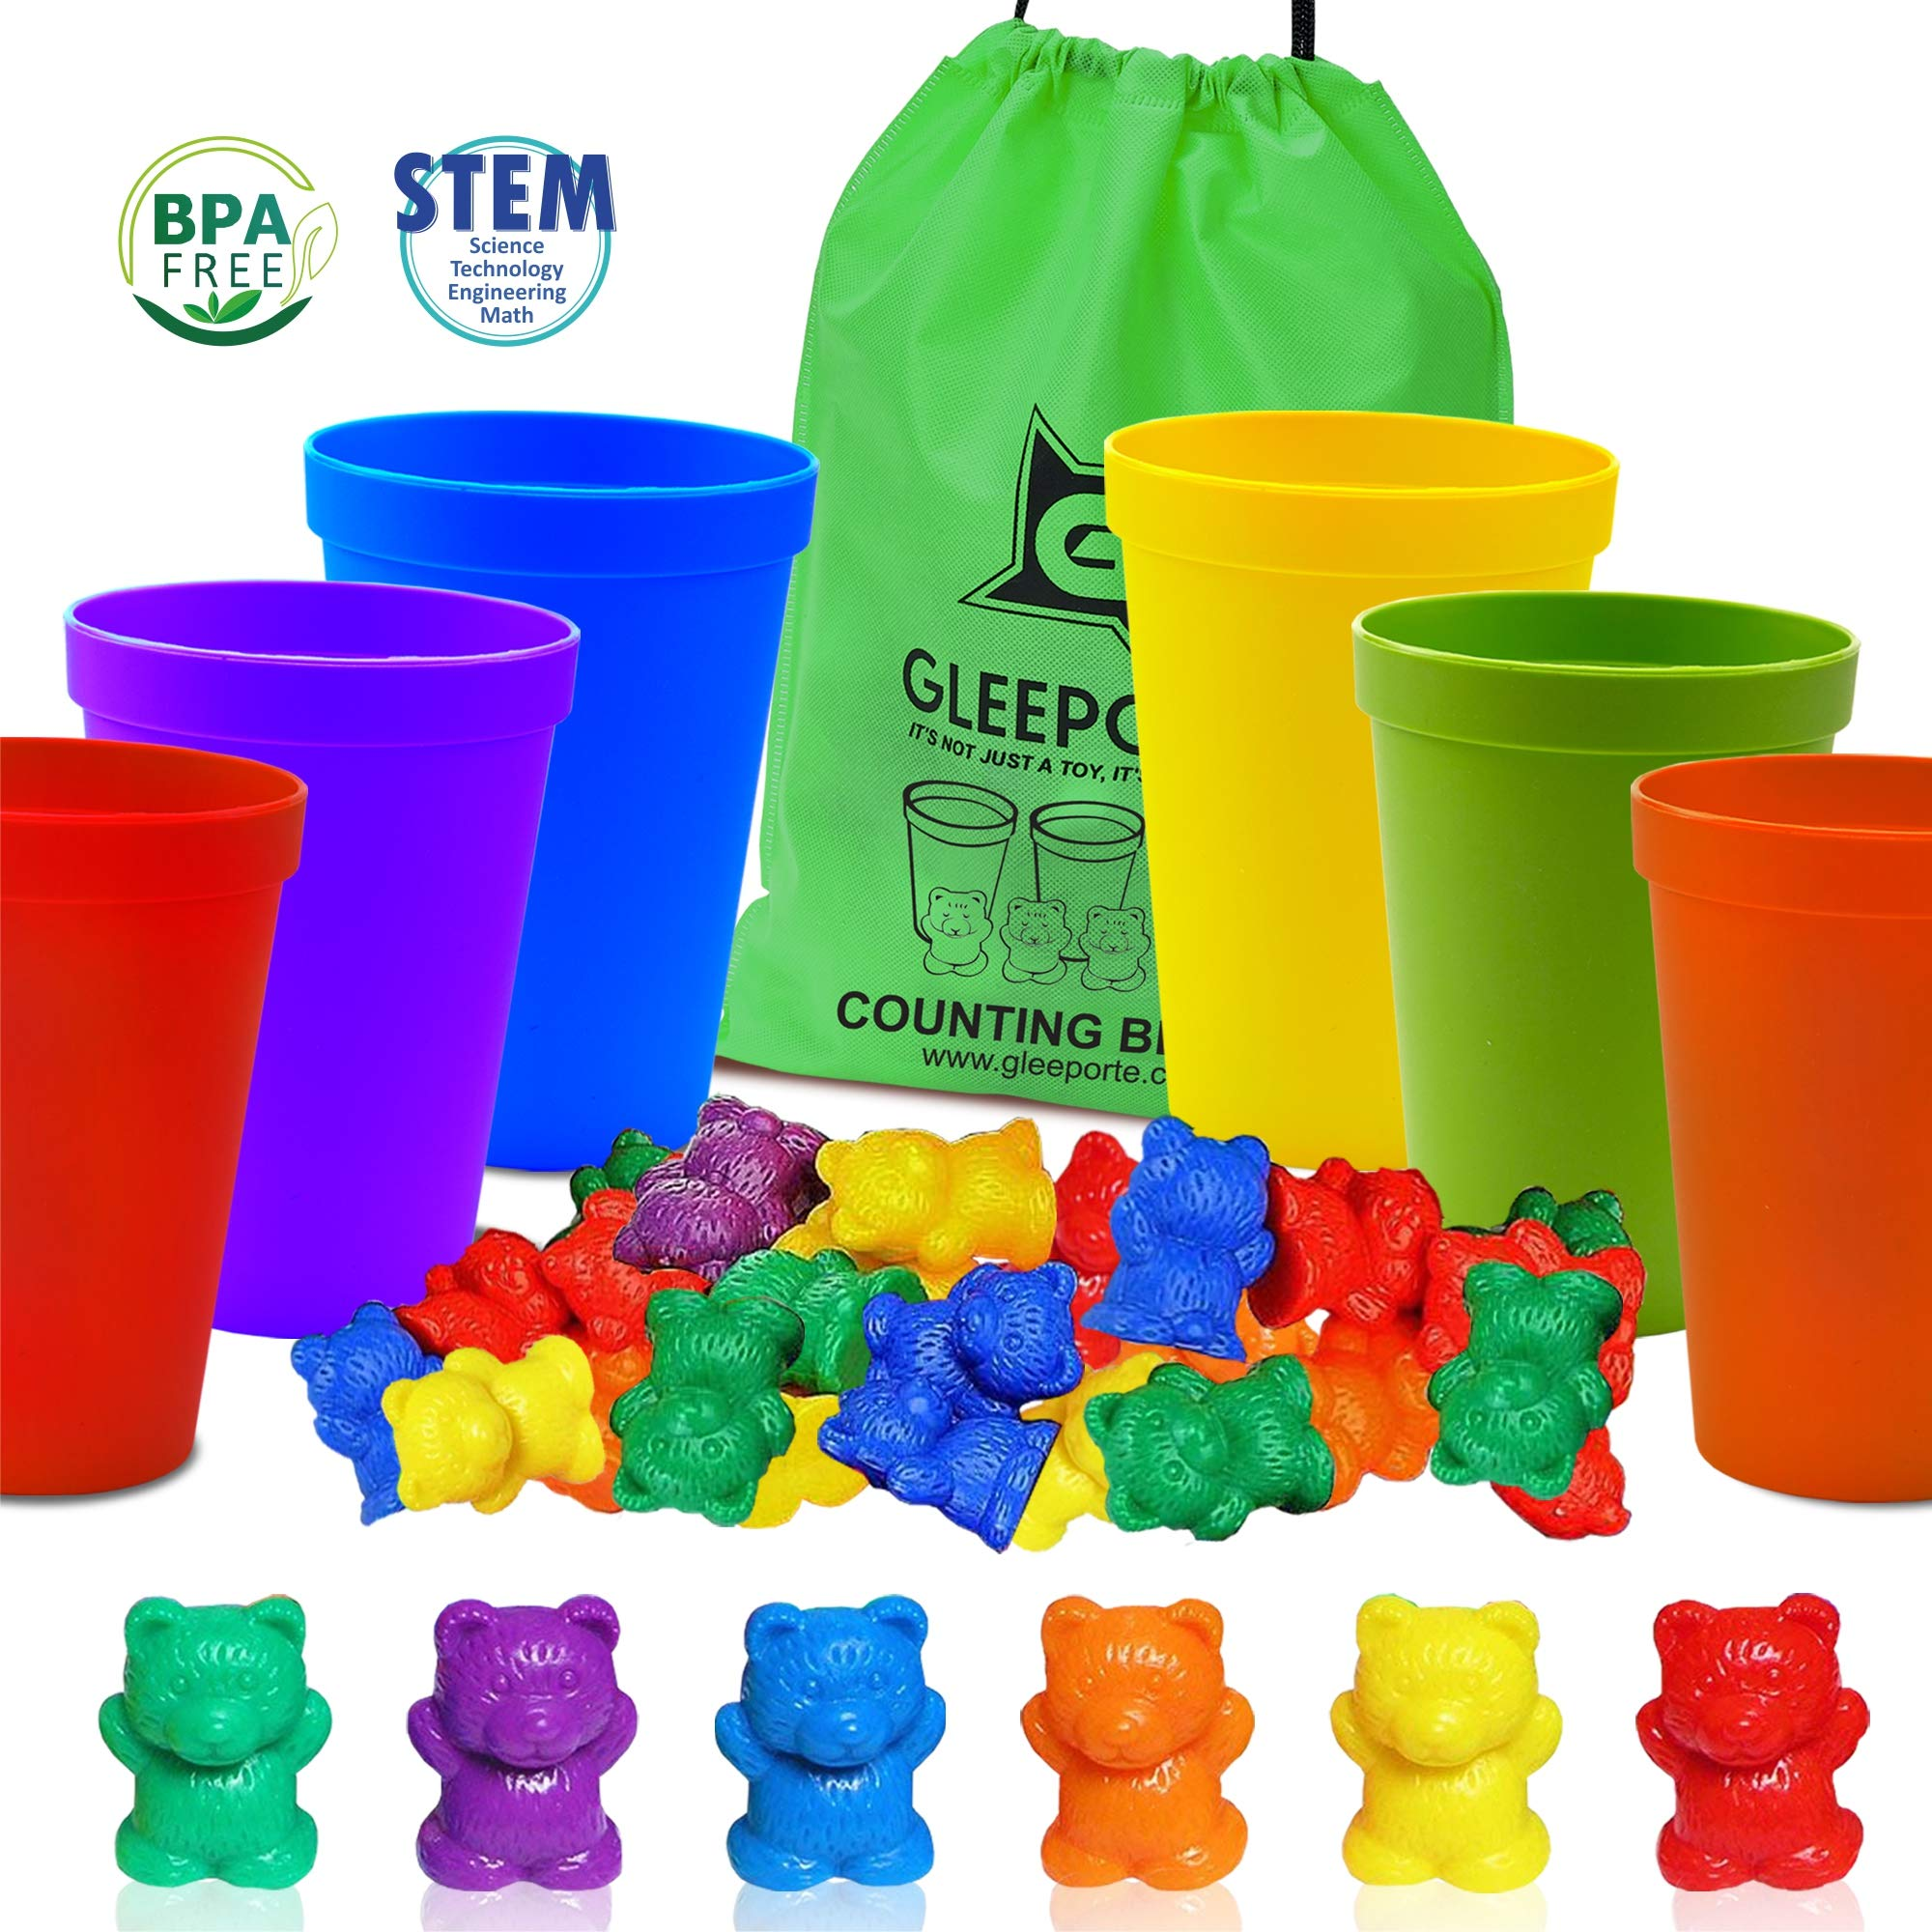 Gleeporte Colorful Counting Bears with Coordinated Sorting Cups | Sorting, Math Skills | (67 Pcs Set) | 60 Bears | 6 Cups | Storage Bag, Ages 4+ by Gleeporte